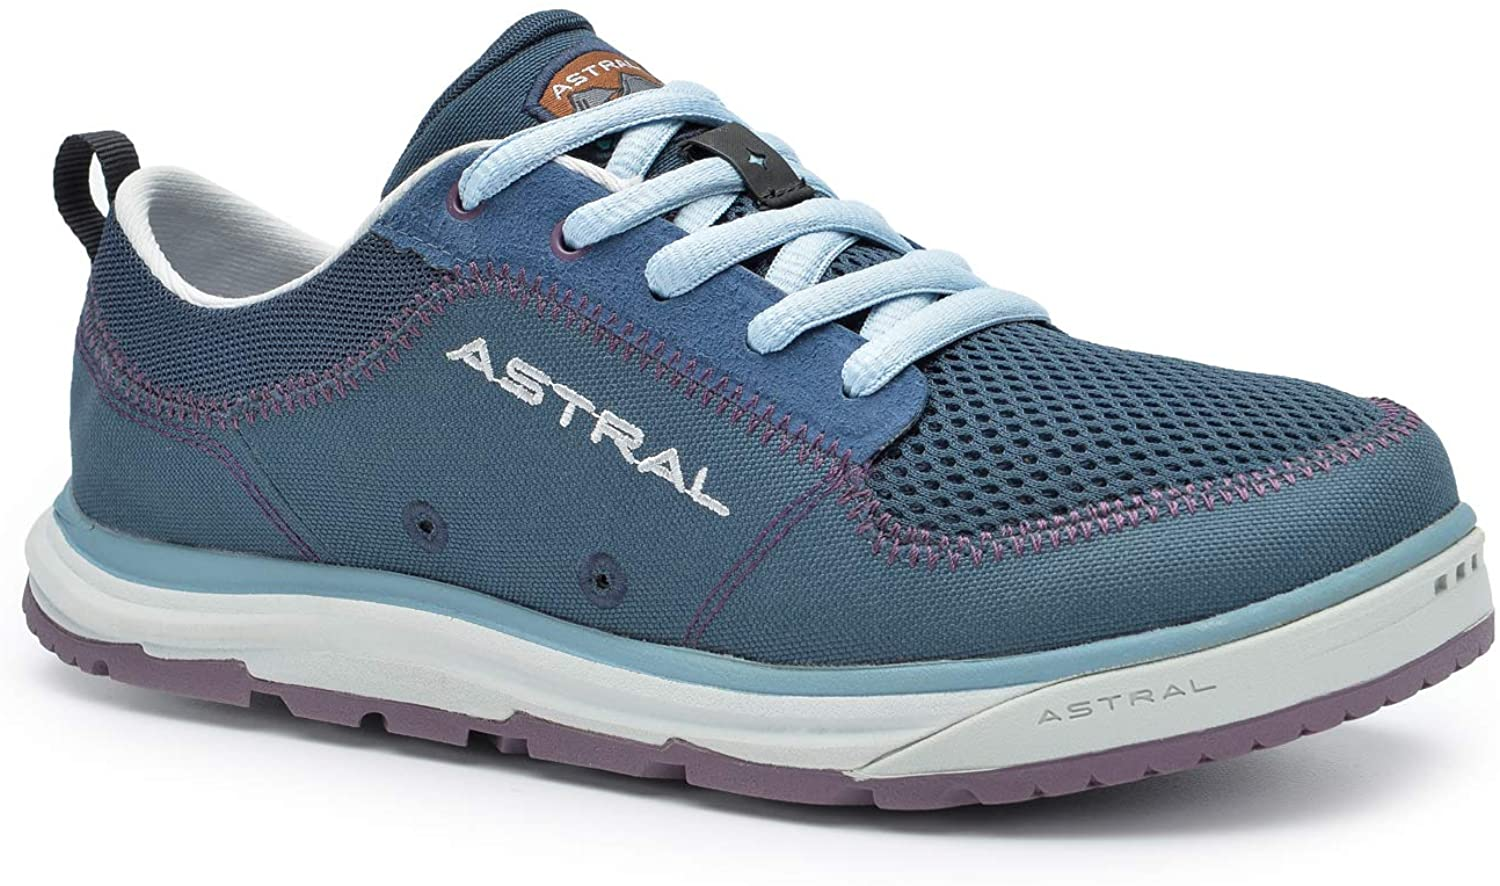 Astral Women's Brewess 2.0 Everyday Minimalist Outdoor Sneakers